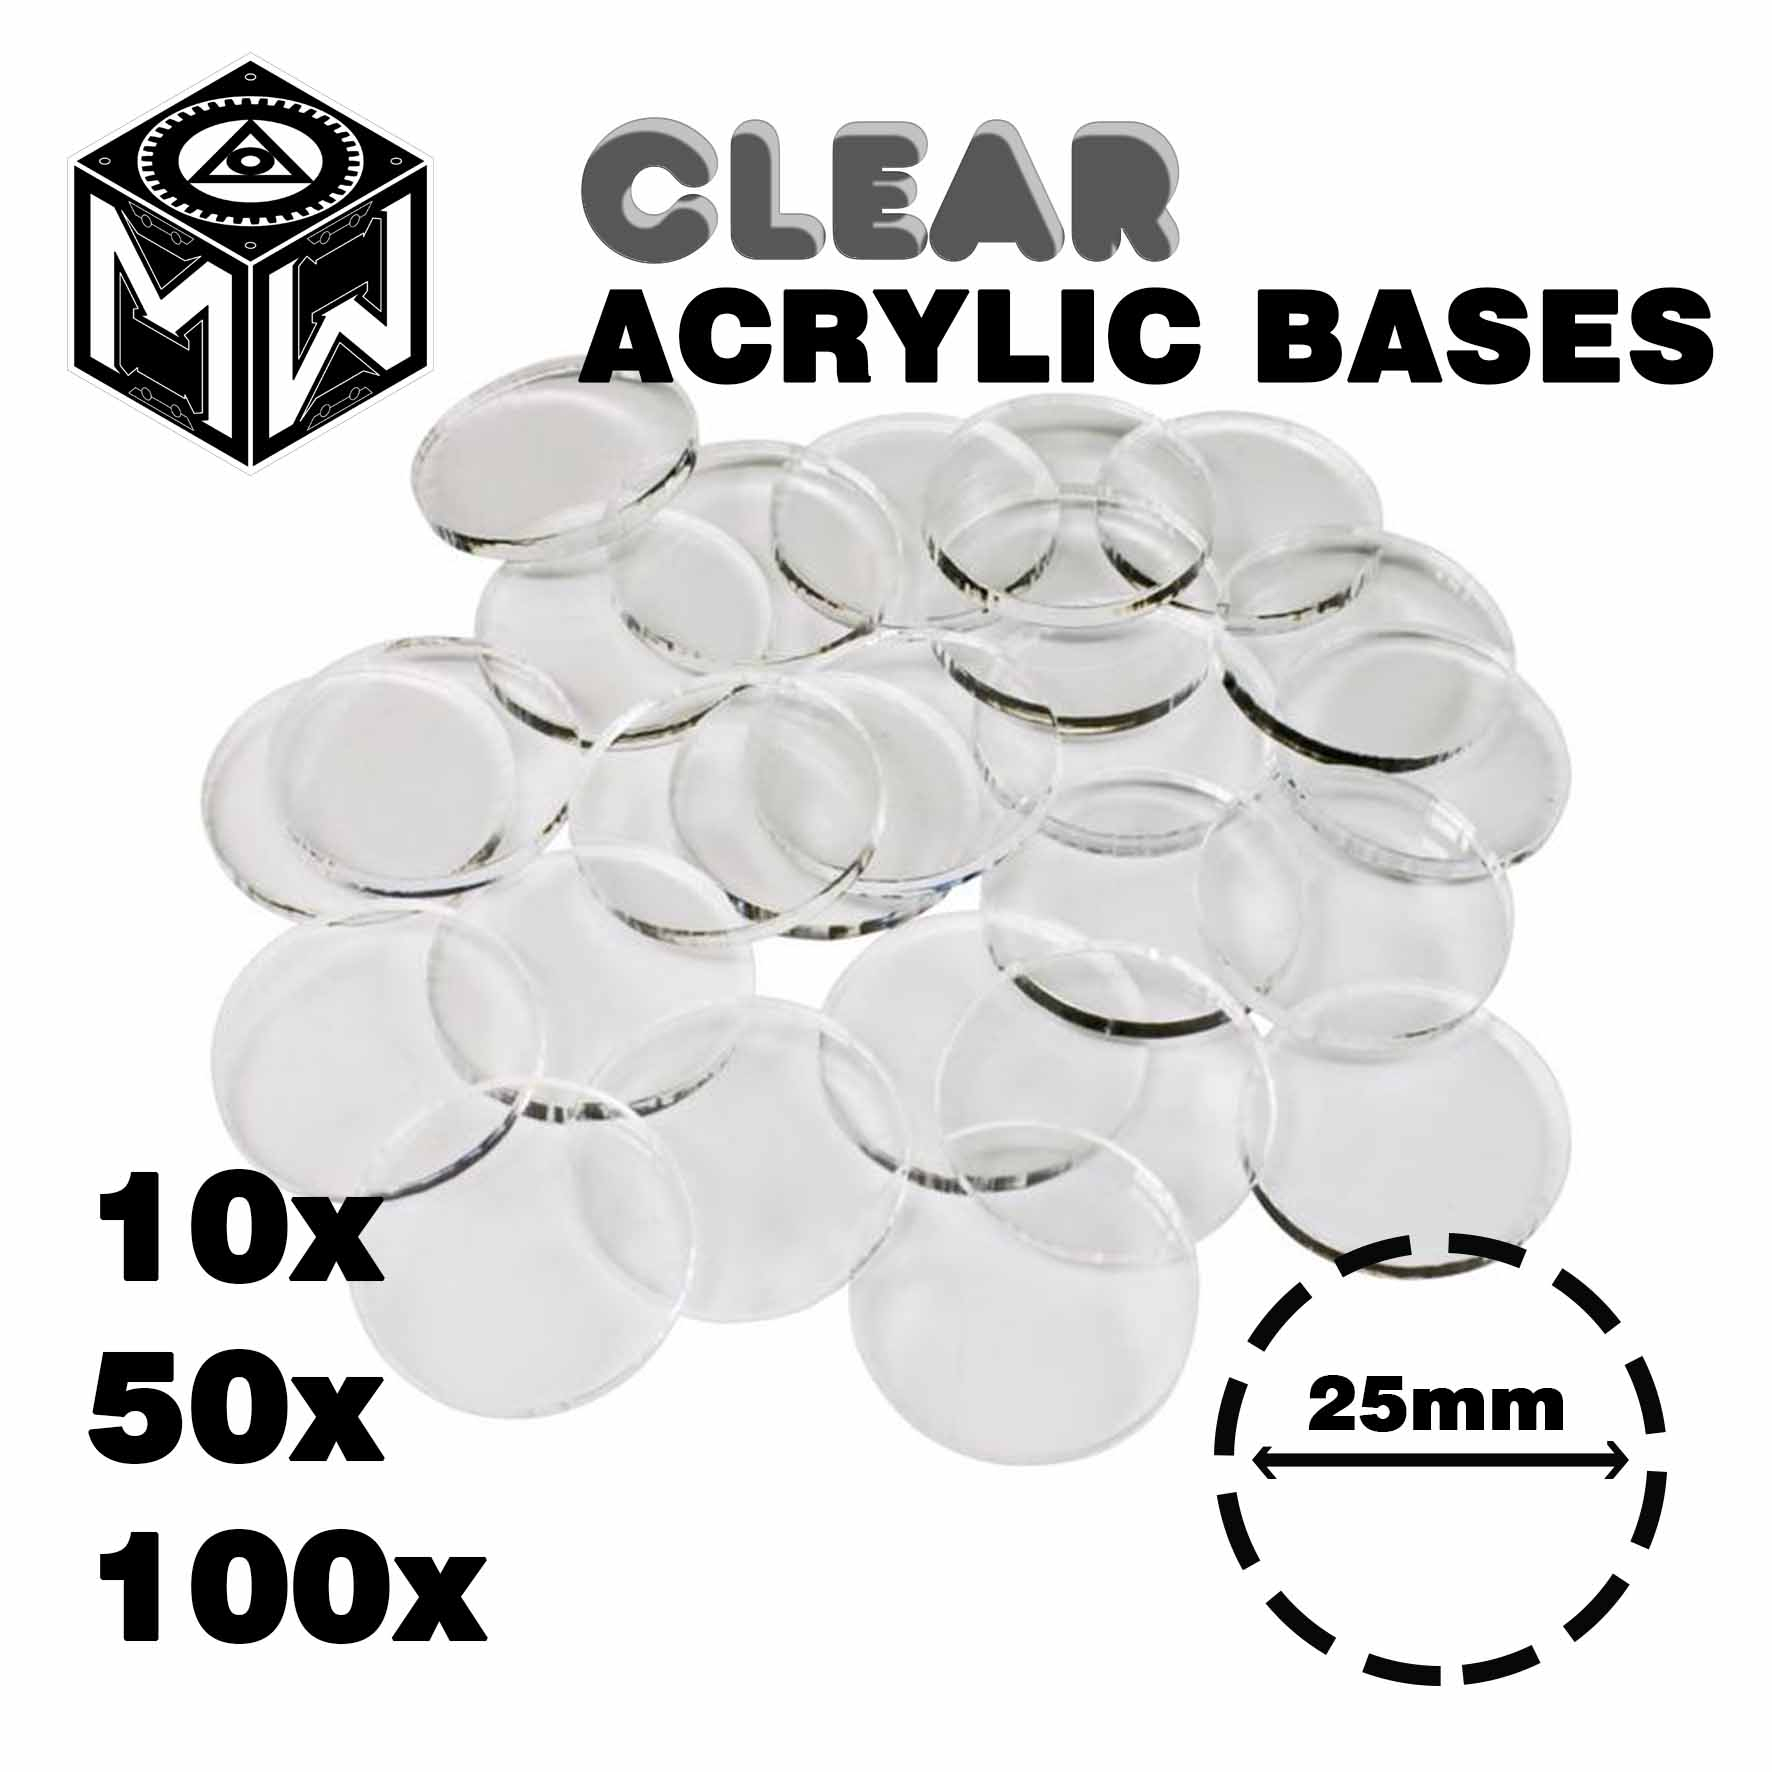 3mm Acrylic Clear Bases, Round 25mm